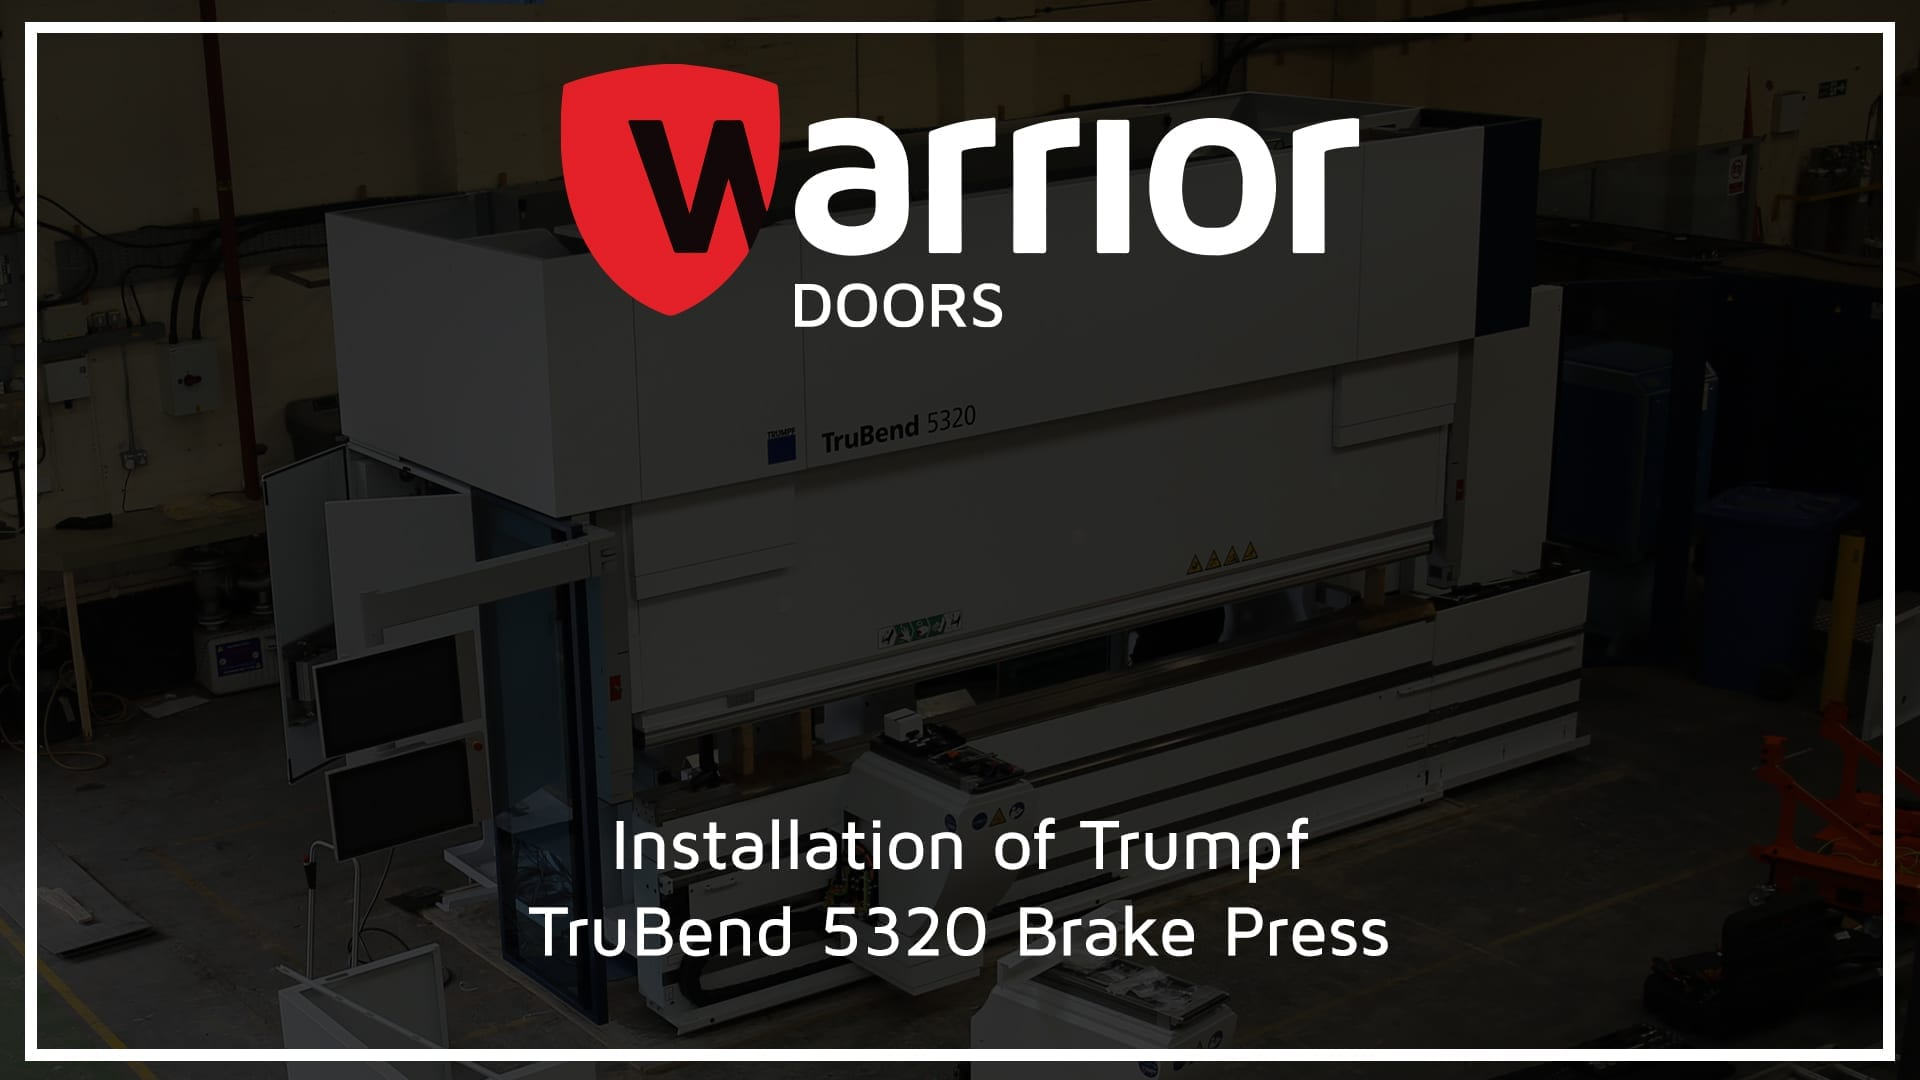 """Trumpf TruBend 5320 Brake Press inside a factory with Warrior Doors Logo and text reading """"Installation of Trumpf TruBend 5320 Brake Press"""""""